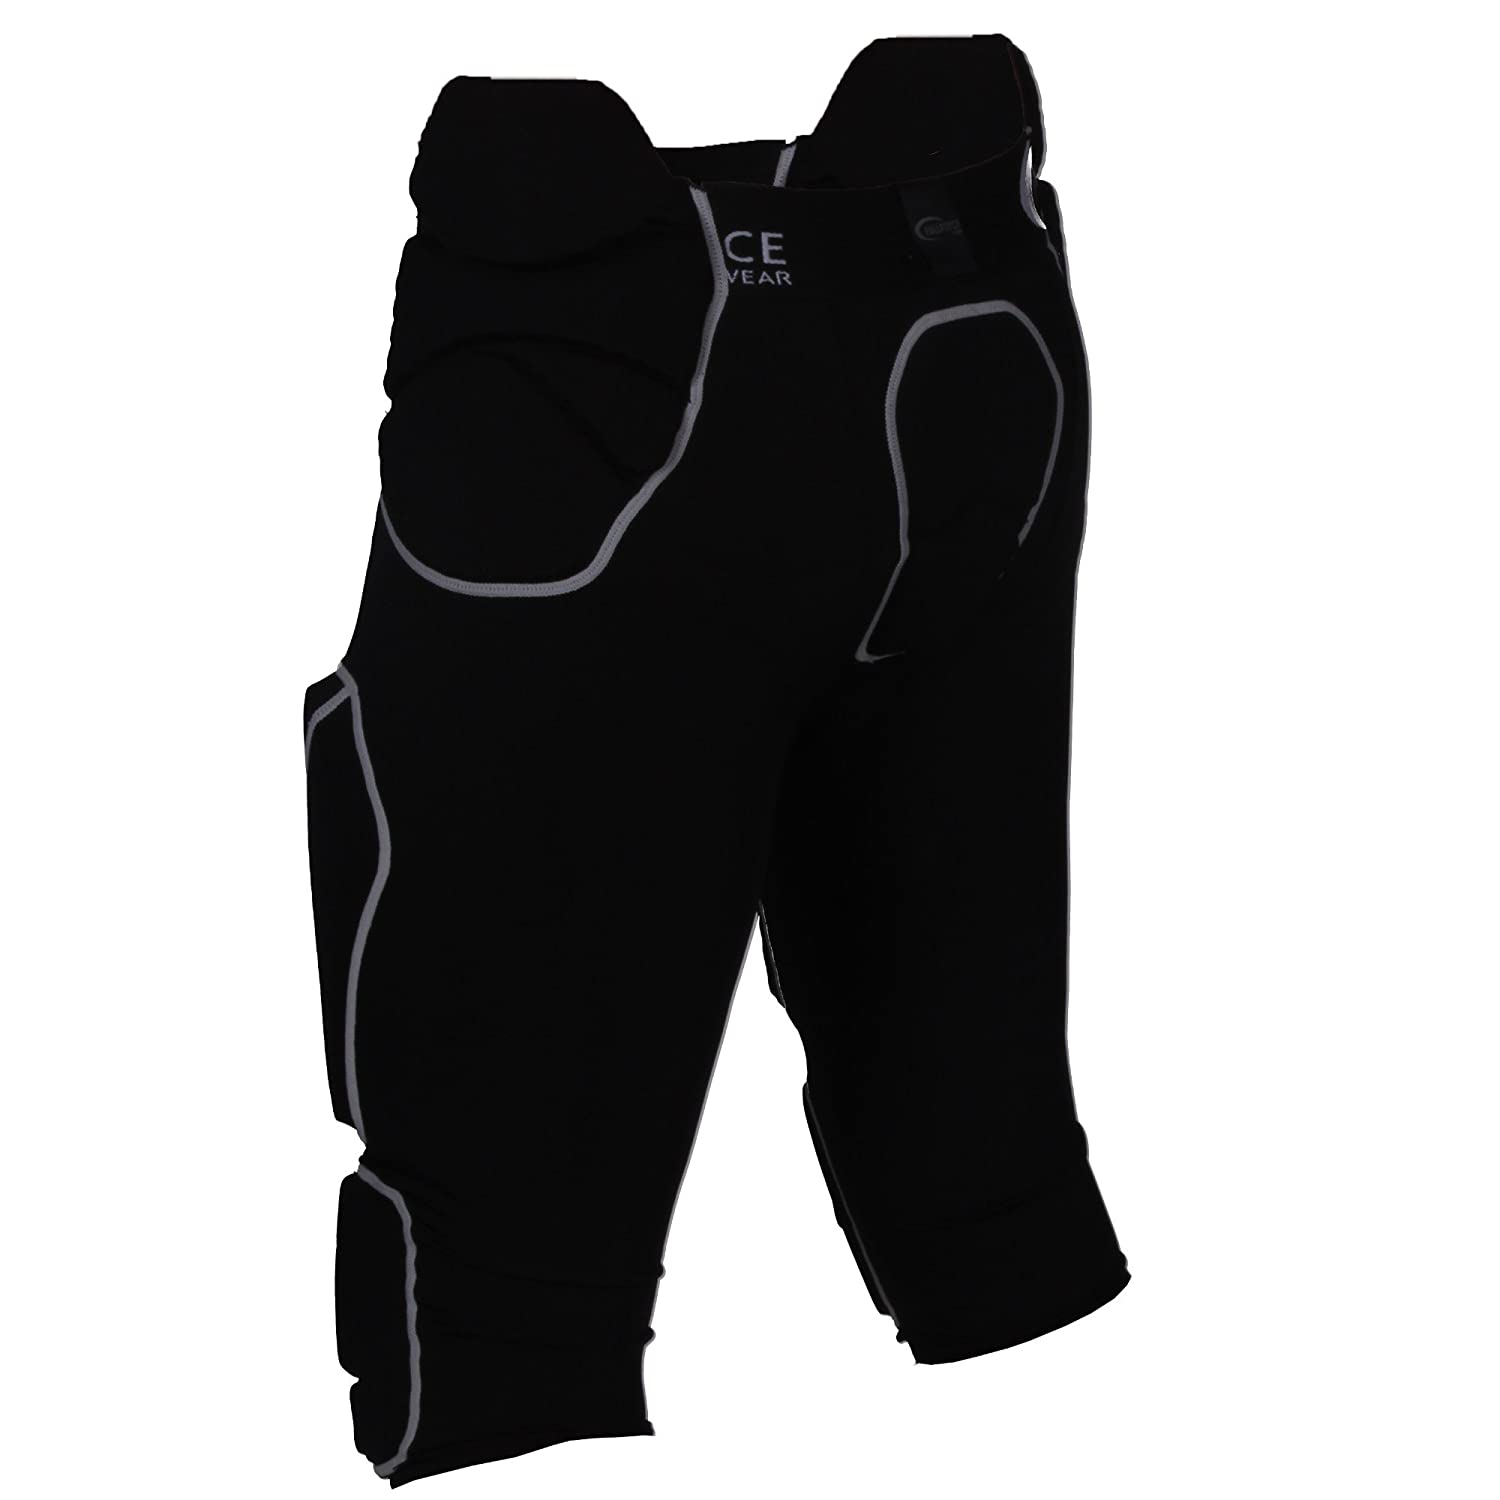 Full Force American Football Mens Trousers with 7/Pockets and 7/Sewn-In Pads black Size S-XXXL